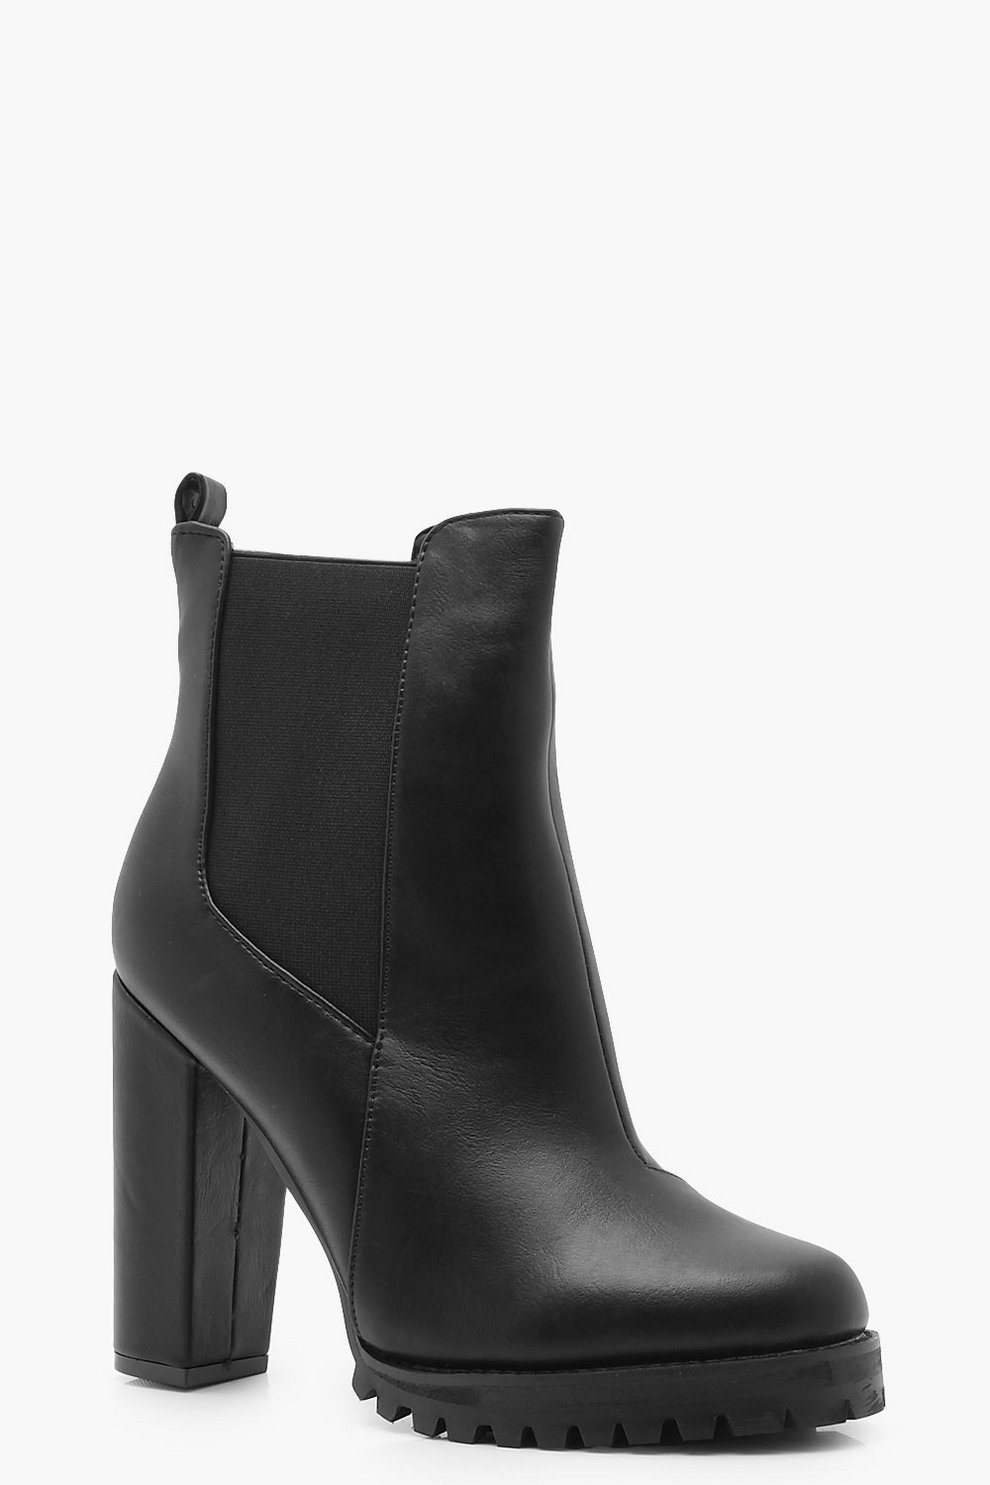 c513001d351 Cleated Platform Pull On Chelsea Boots